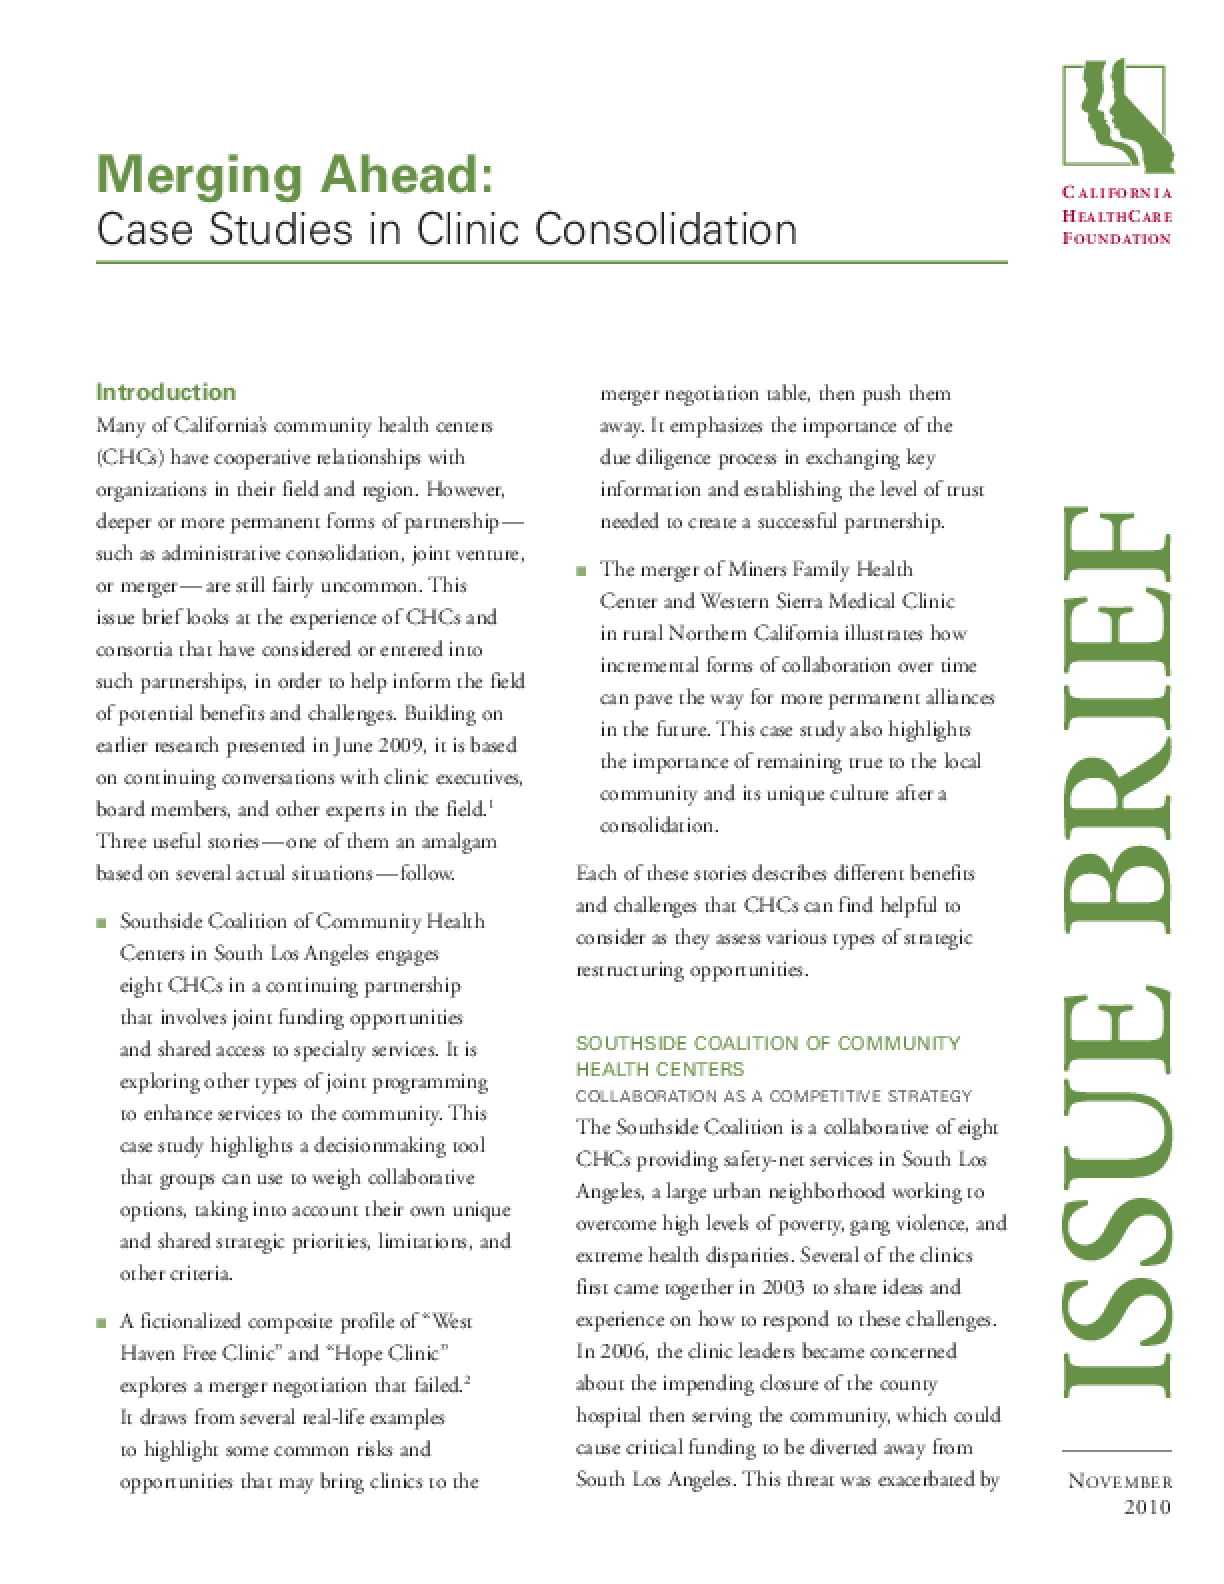 Merging Ahead: Case Studies in Clinic Consolidation - IssueLab